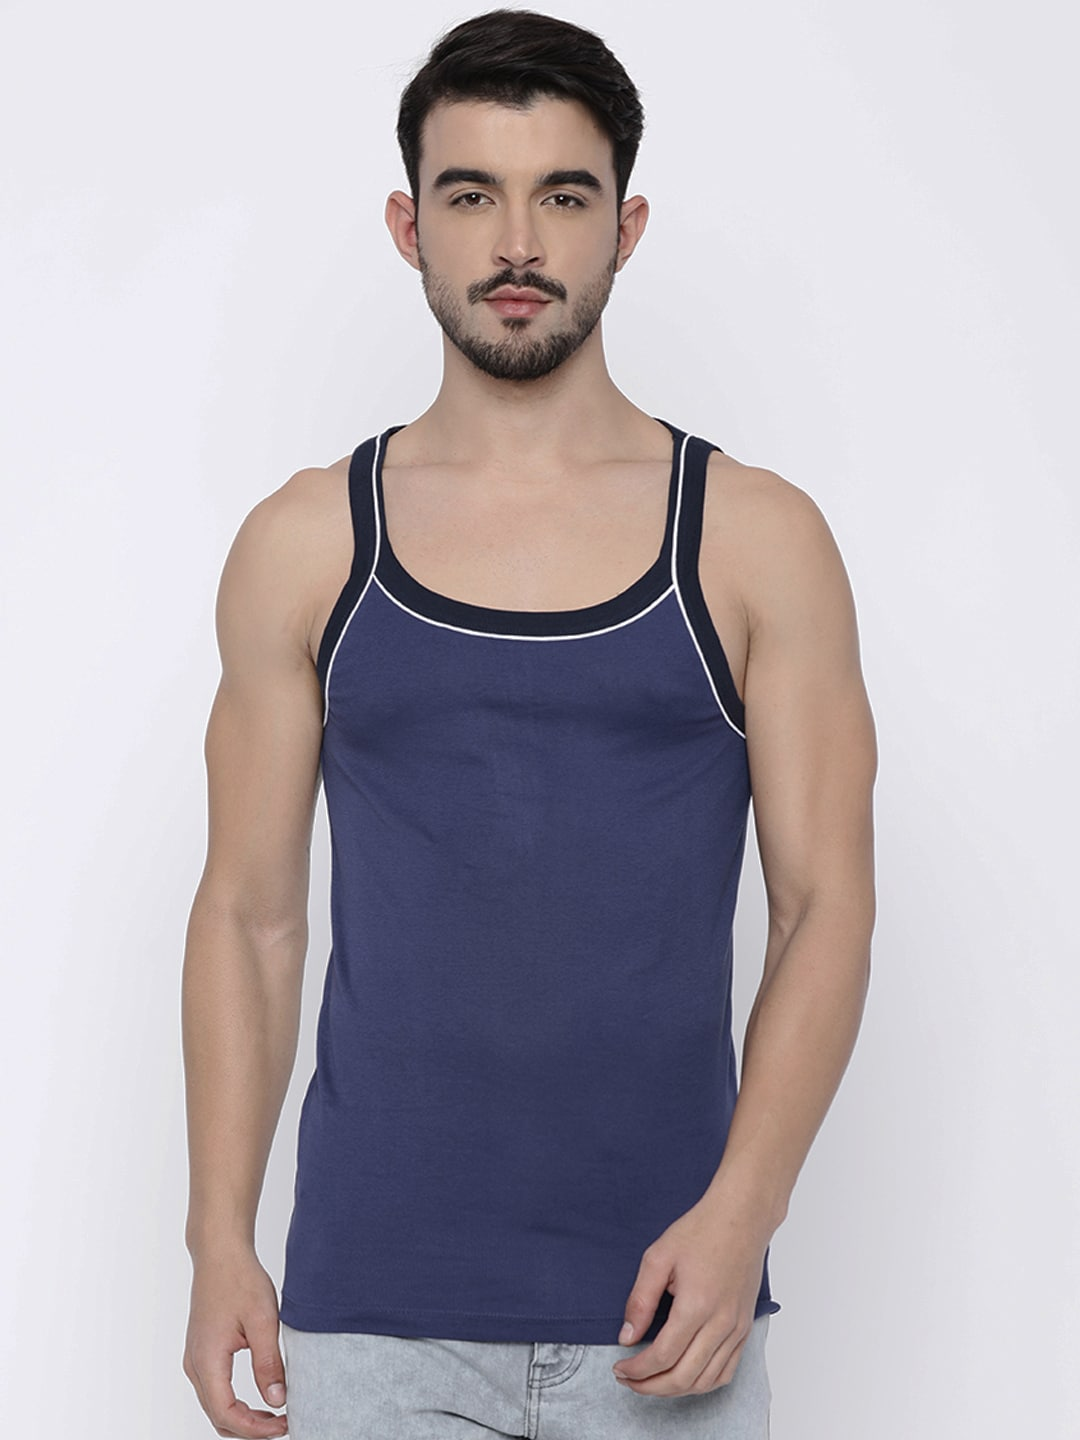 cafc113036601 Hanes Store - Buy Hanes Innerwears and Comfort Clothing Online in India